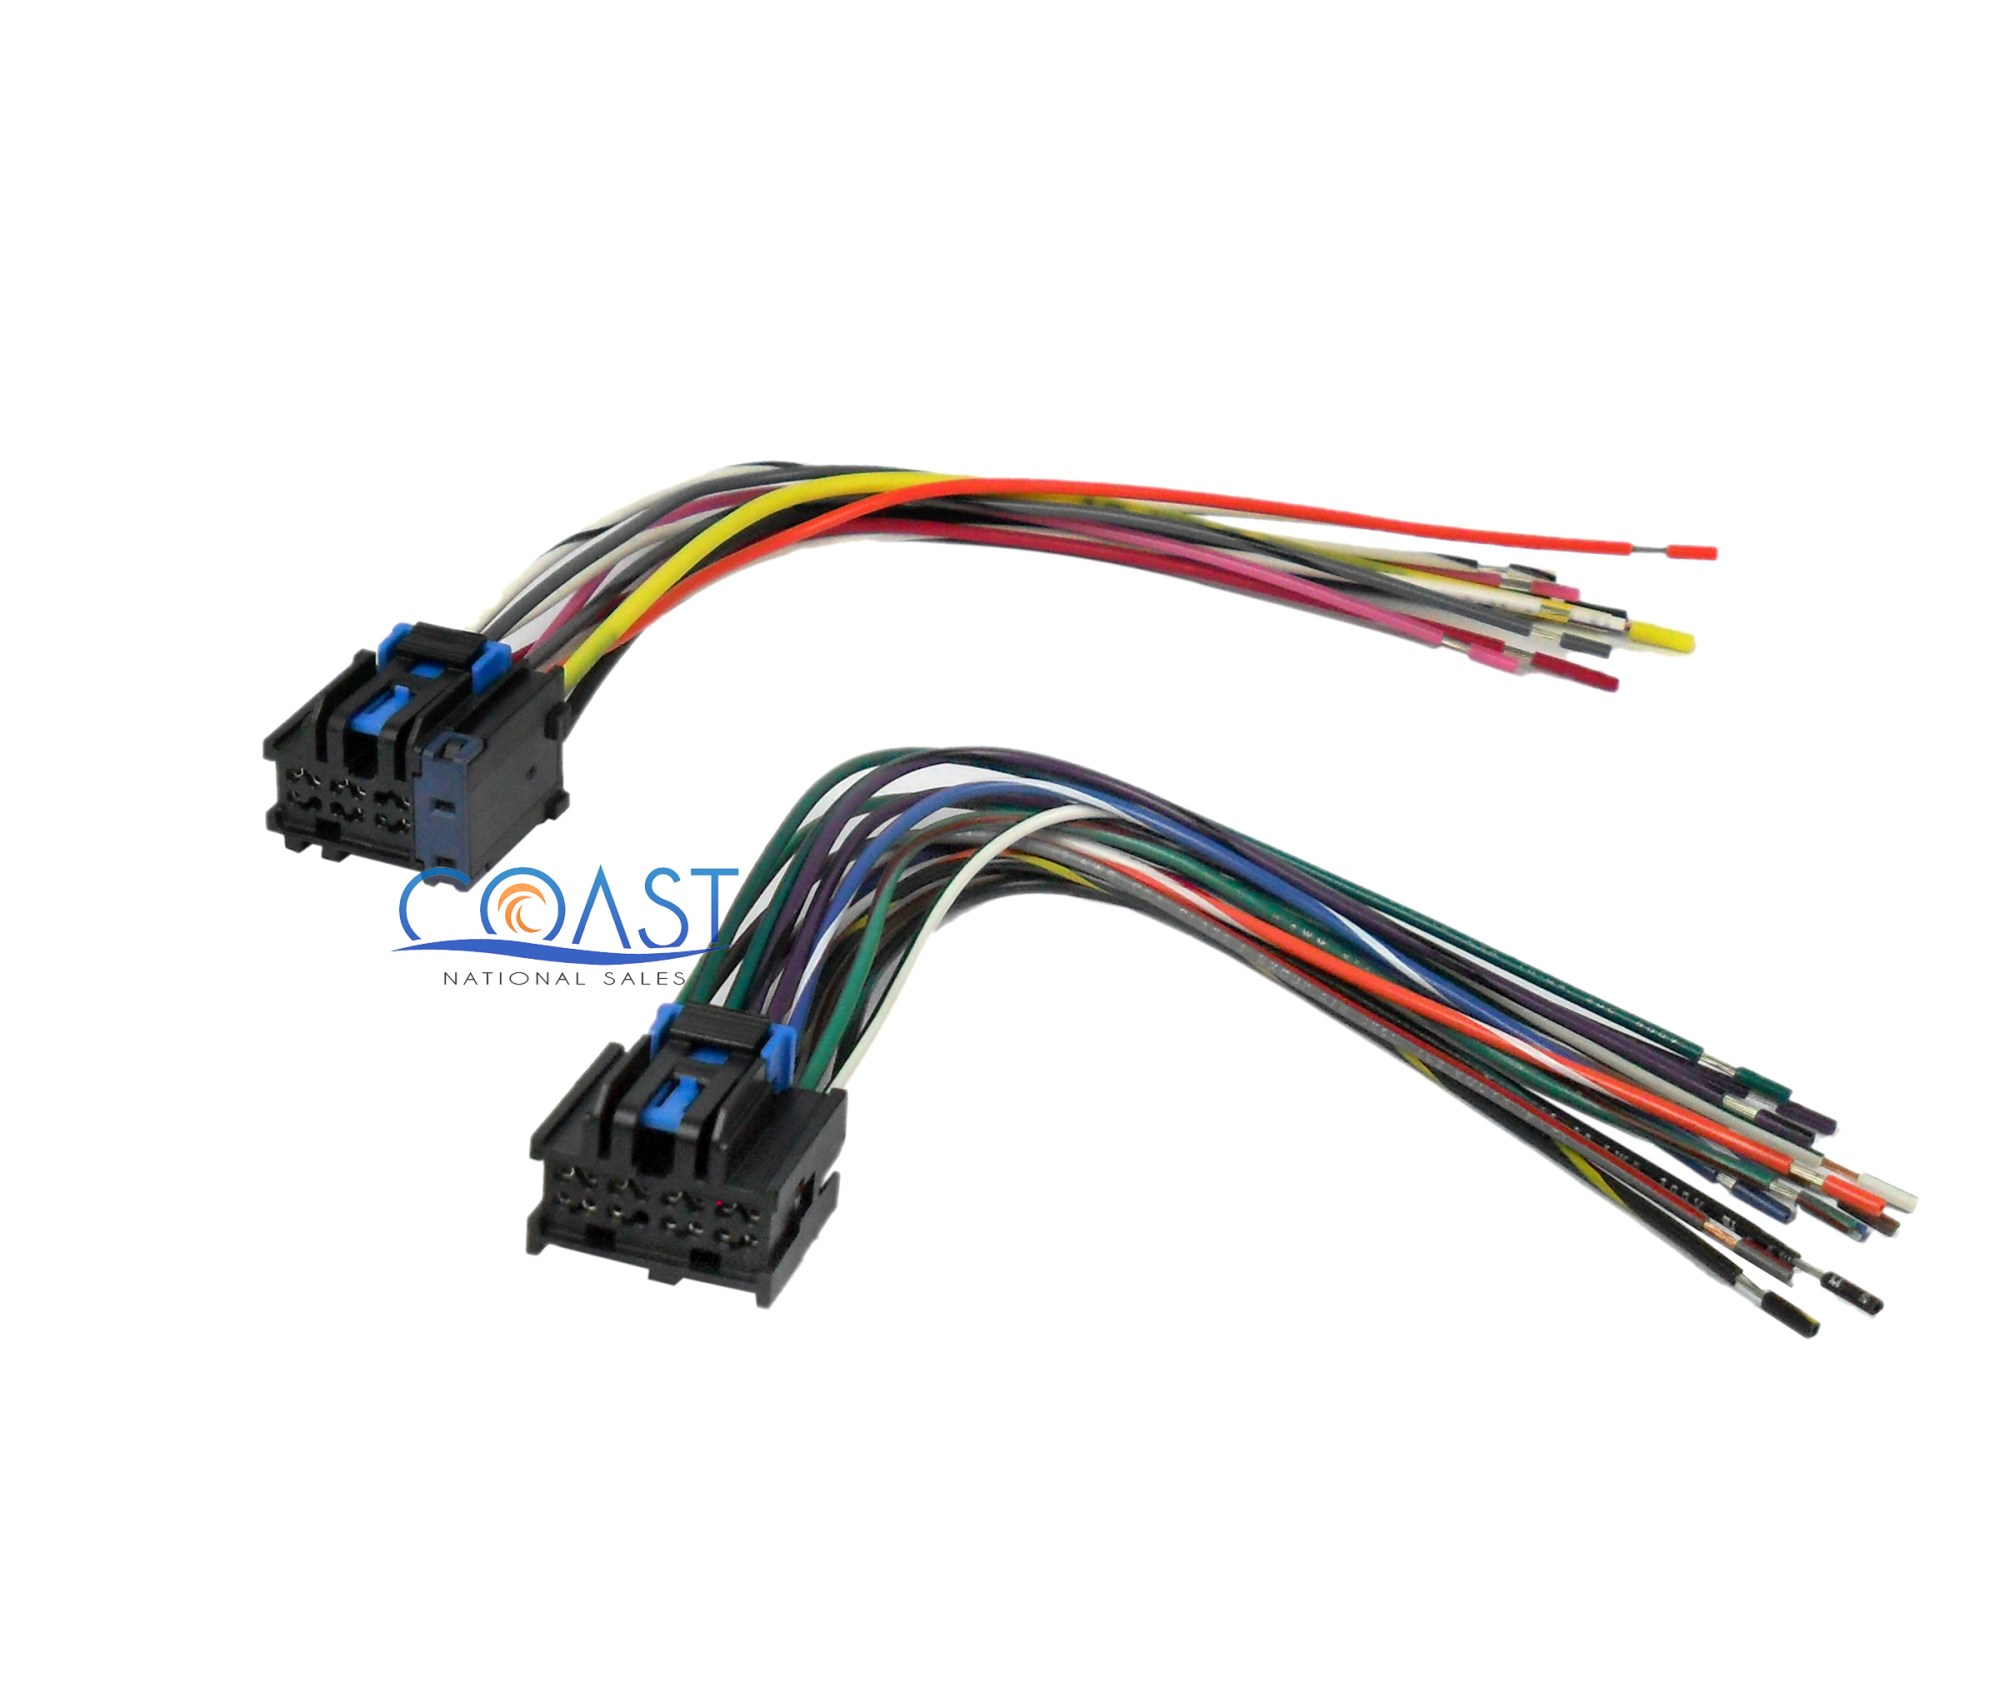 hight resolution of car stereo wiring harness plugs into factory radio for 1996 up saturn ion vue